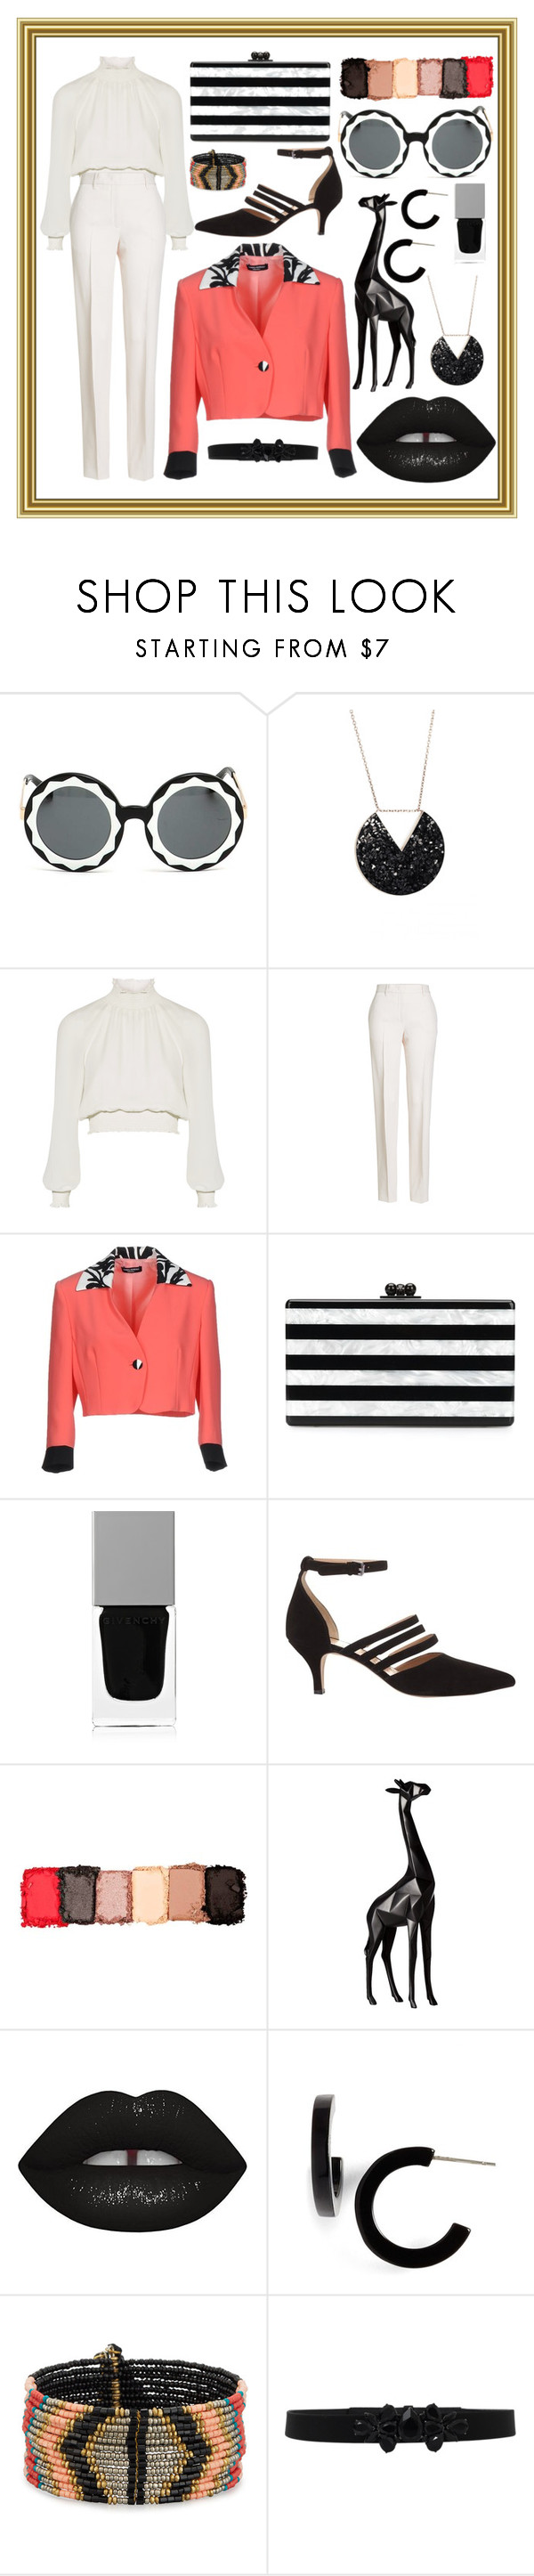 """Untitled #111"" by asena-cakmak on Polyvore featuring Markus Lupfer, Cinq à Sept, Jil Sander, Alberta Anticoli, Edie Parker, Givenchy, Mint Velvet, NYX, Torre & Tagus and Lime Crime"